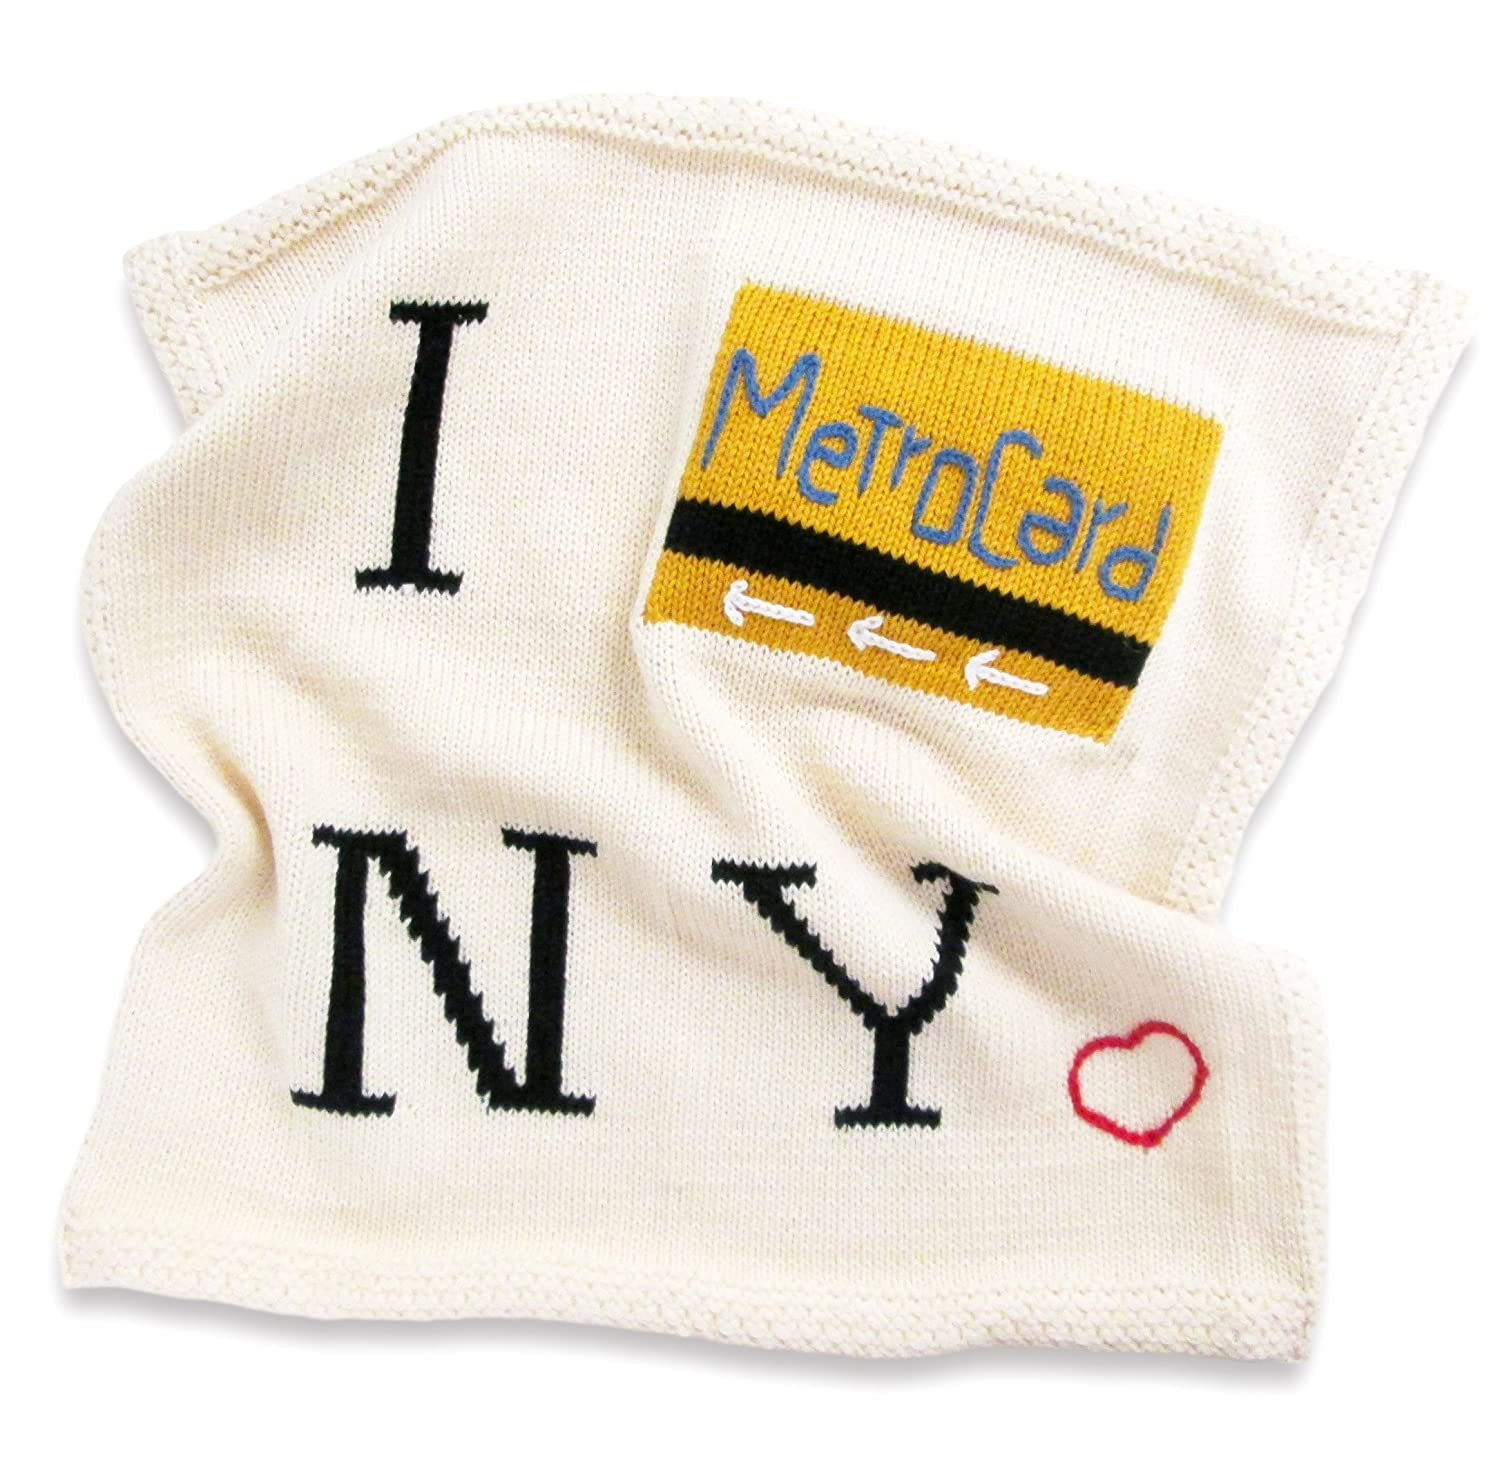 "Metrocard 14/"" x 14/"" Estella Organic Cotton Lovey or Baby Toy Security Blanket"